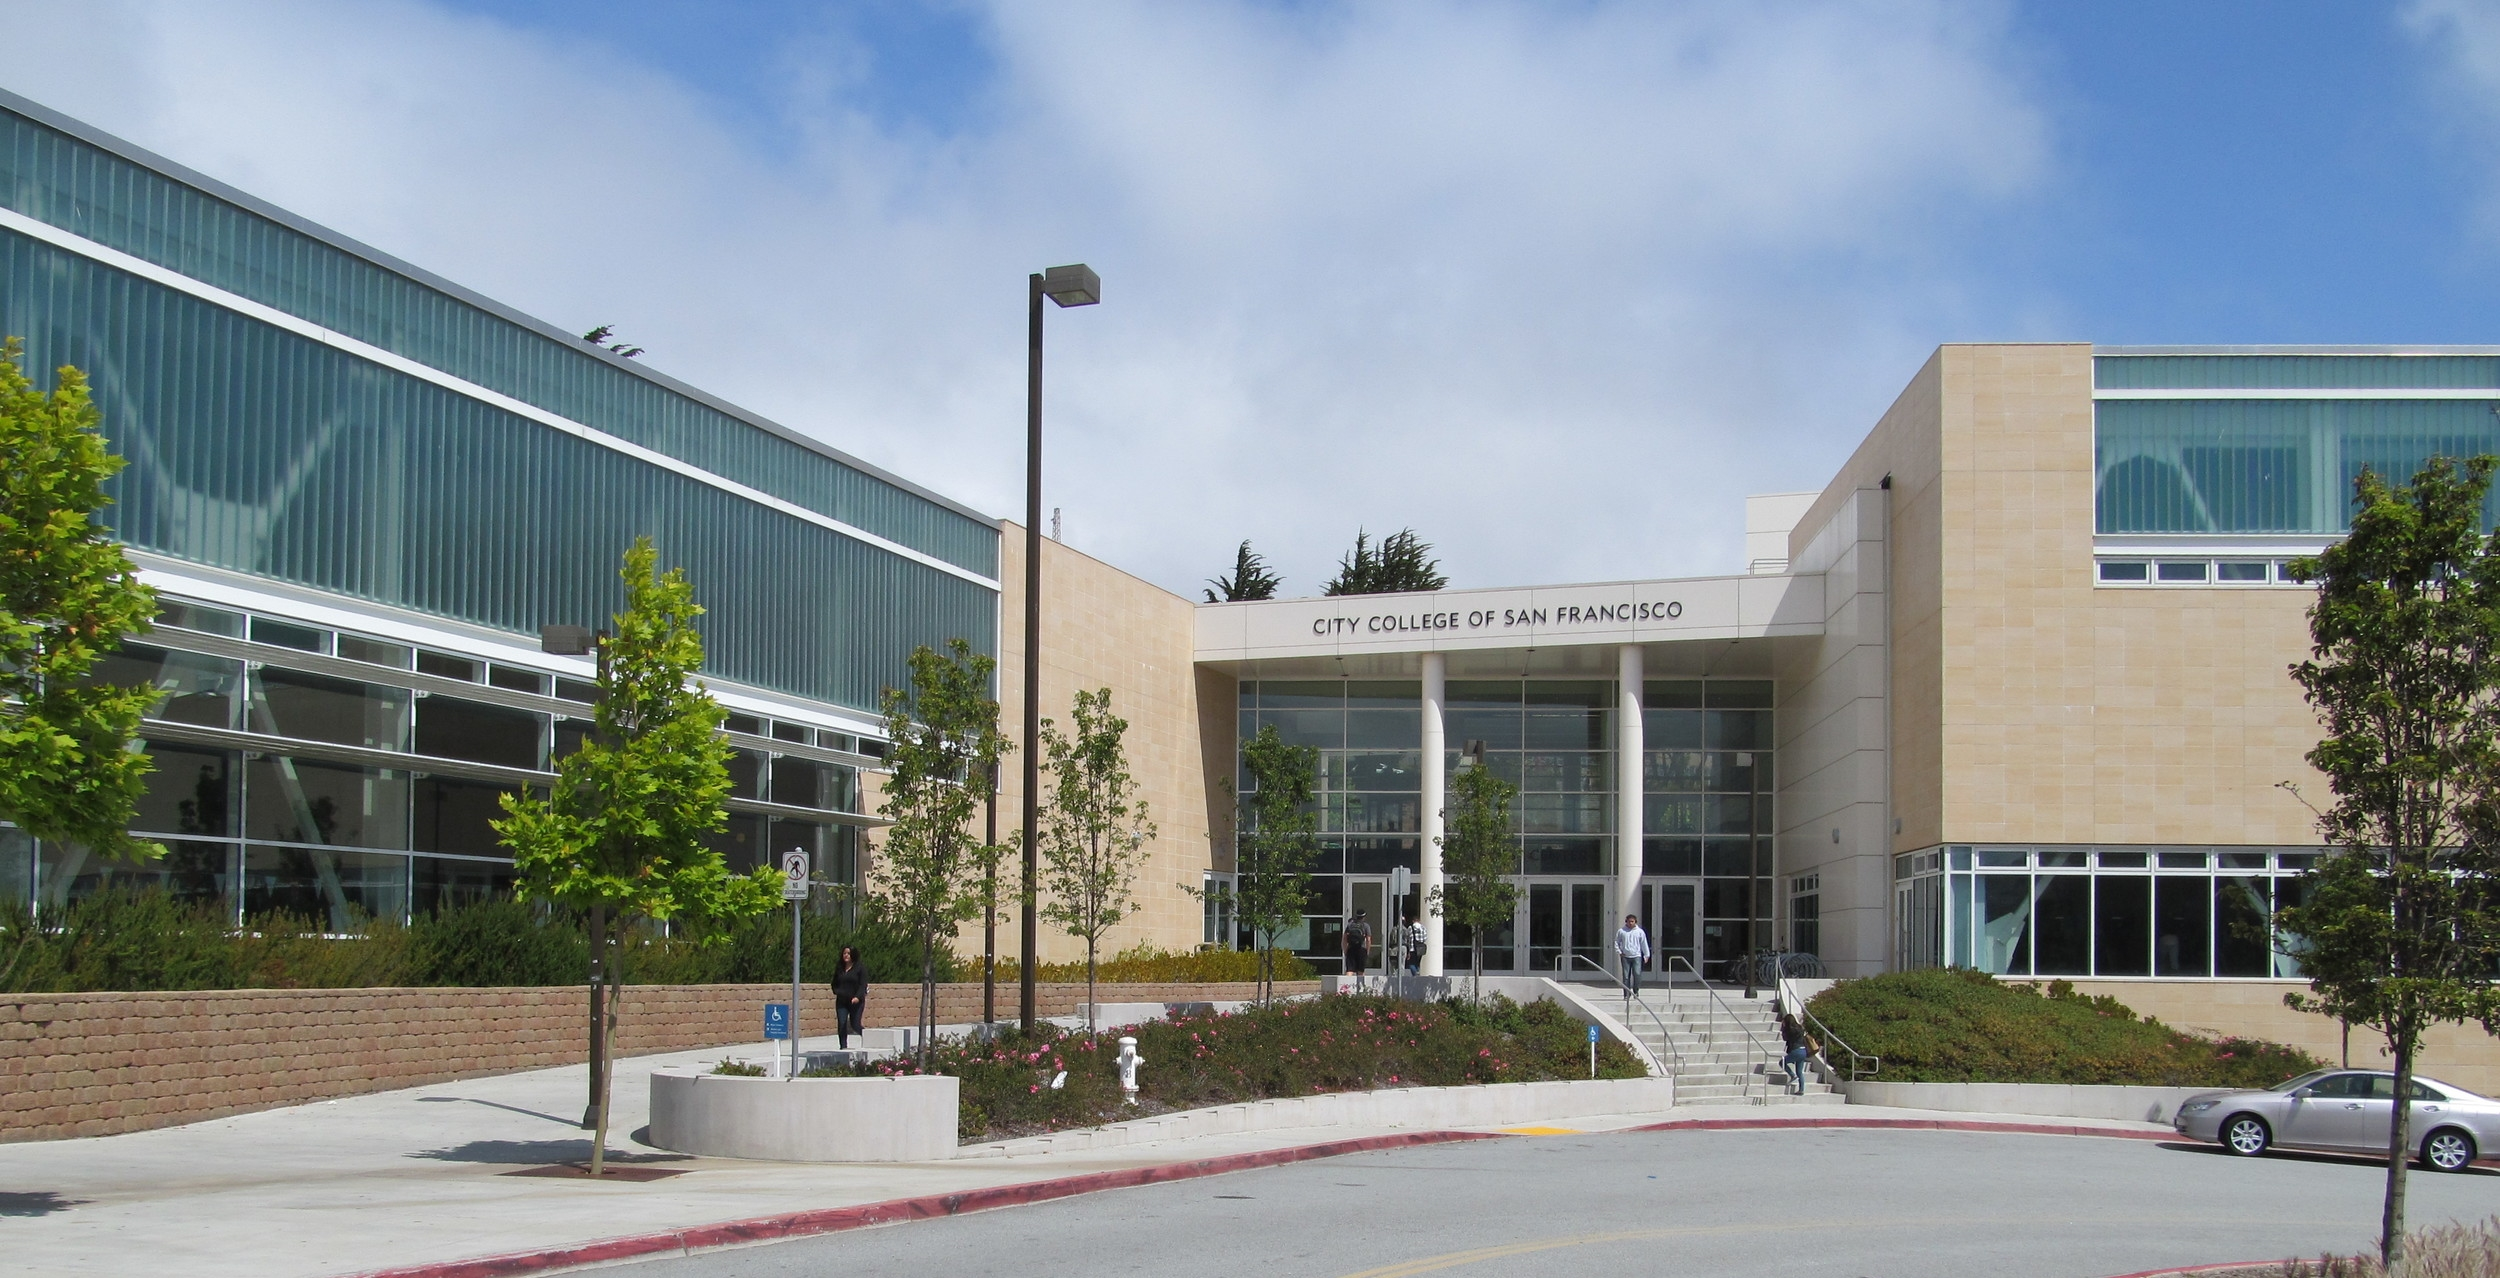 One of the nation's largest public colleges, City College of San Francisco attracts students to the neighborhood.